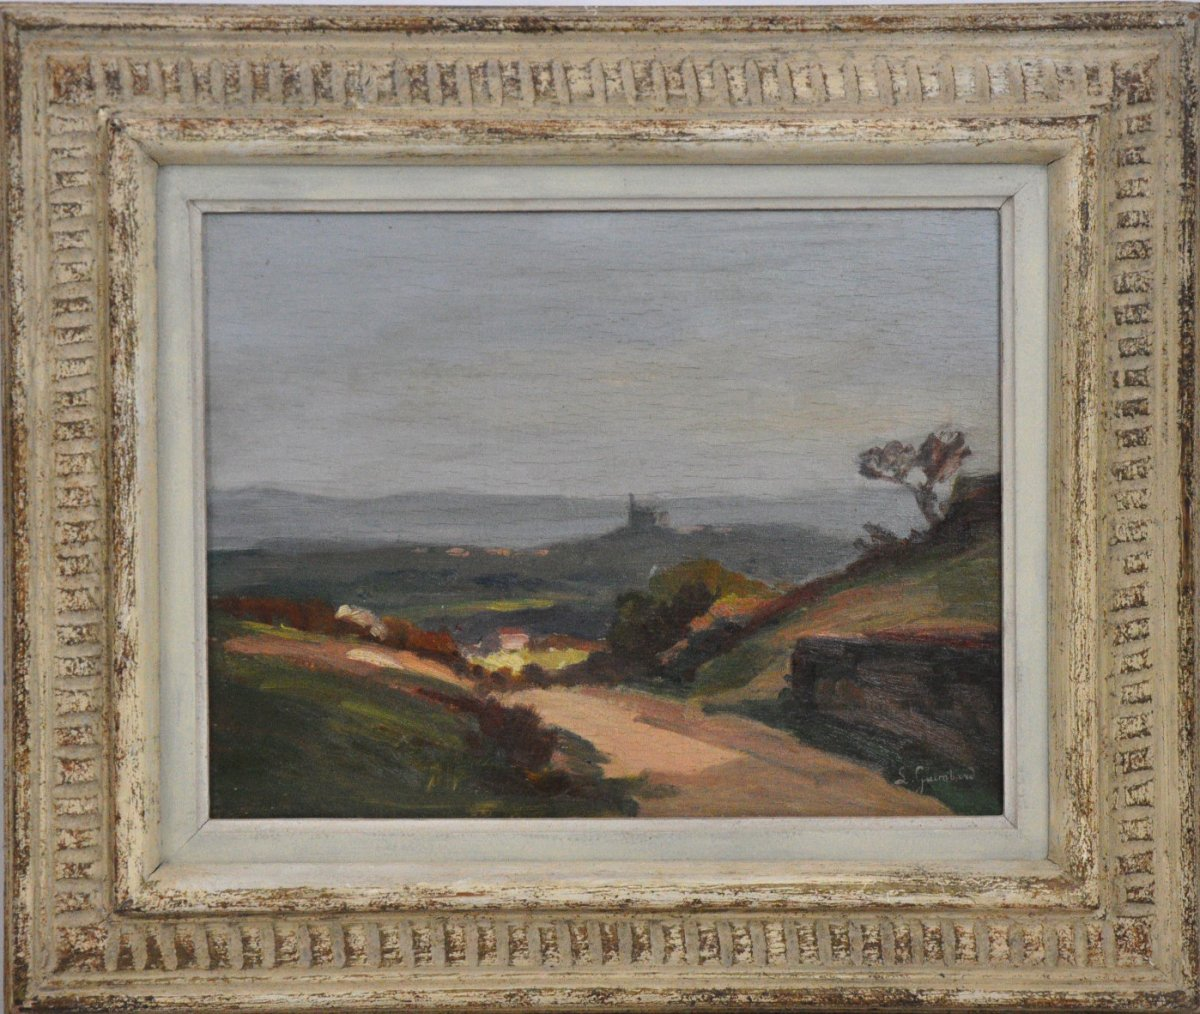 Saint-fortunat, Oil On Wood, Signed Lucienne Guimbard, 20th Century